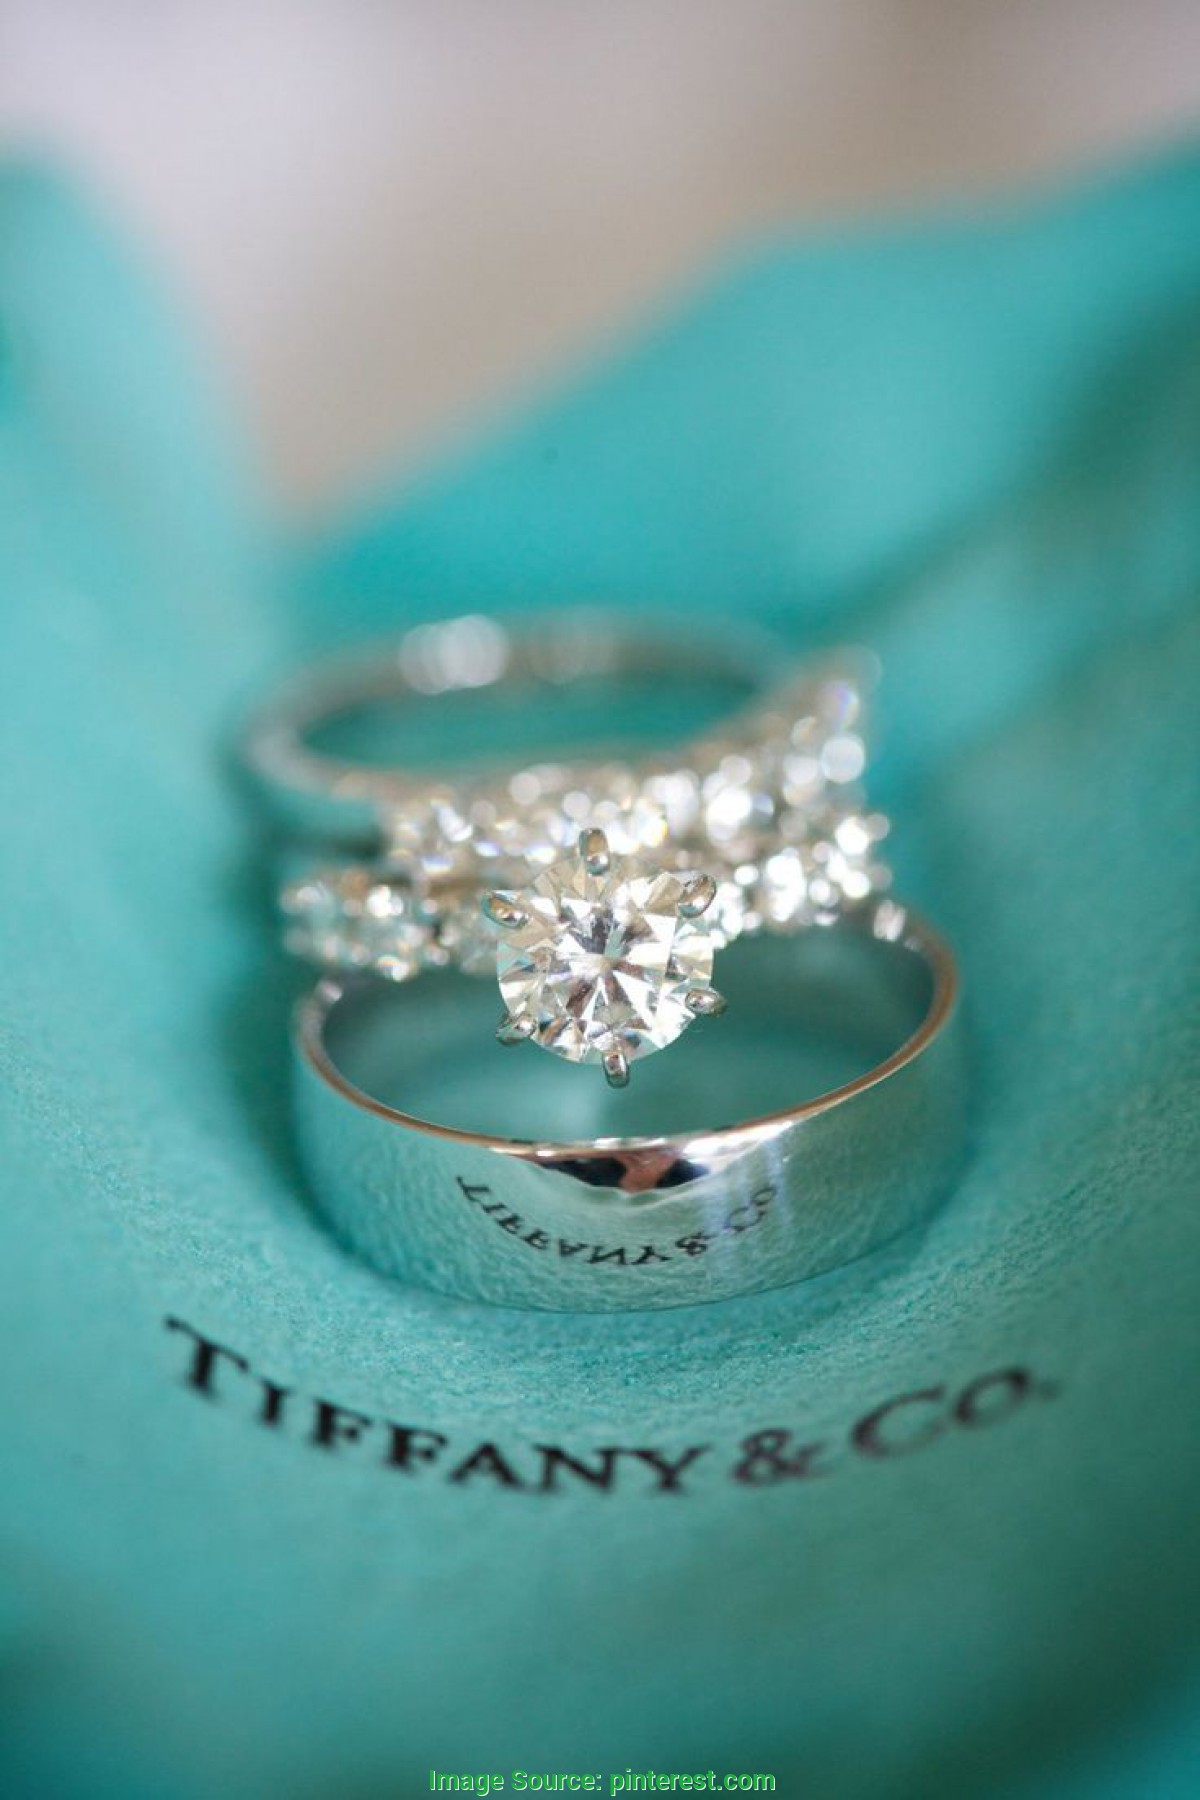 Fofa Aliança Noivado Tiffany 30 Best Anel de Noivado Images On Pinterest | Dream Ring, Blin